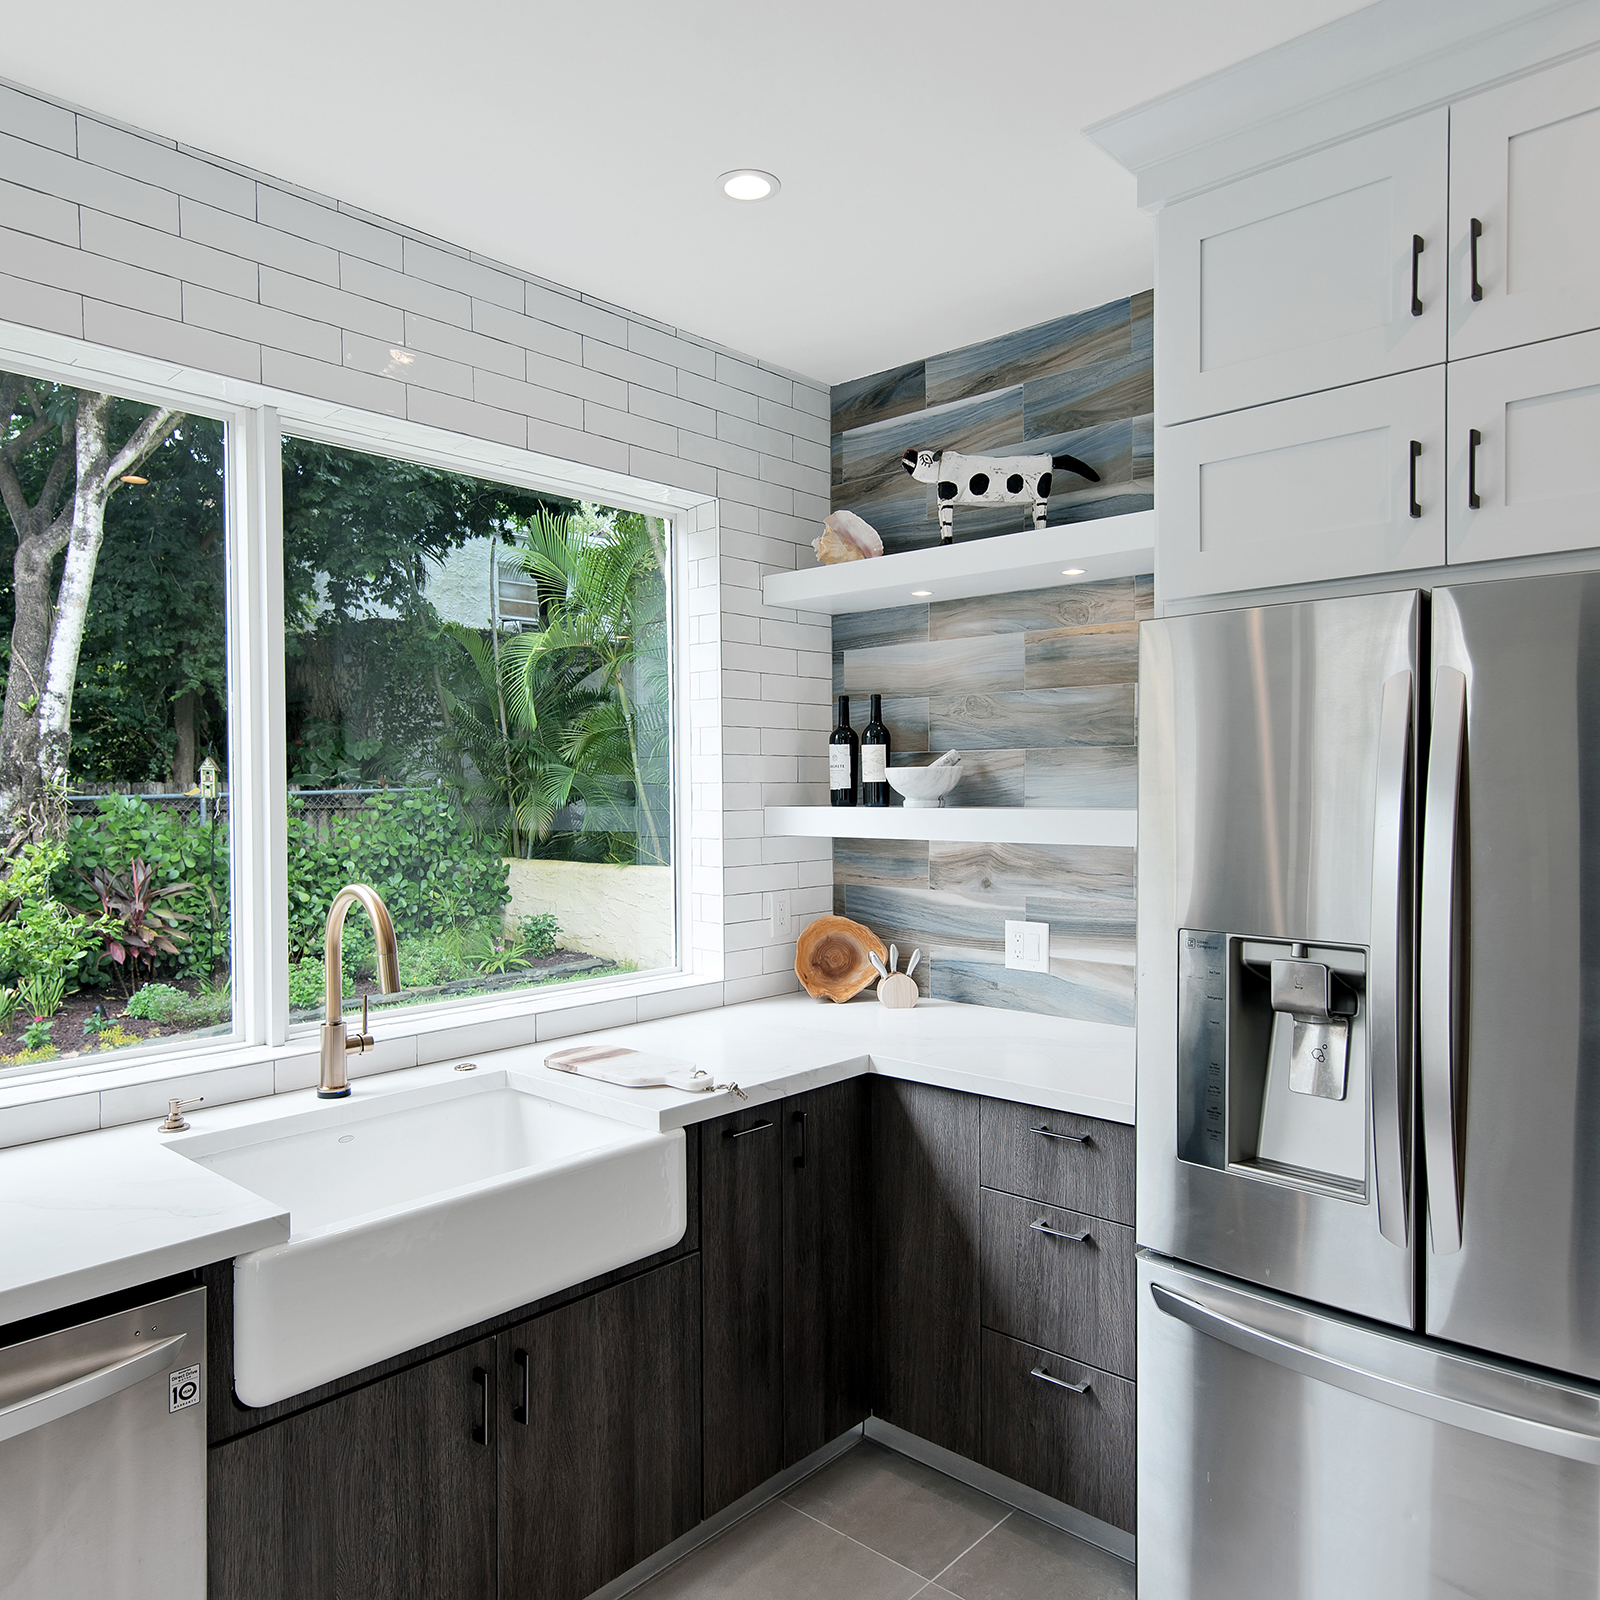 KabCo-Kitchens-arabesco-miami-kitchen-remodel-Thumb2